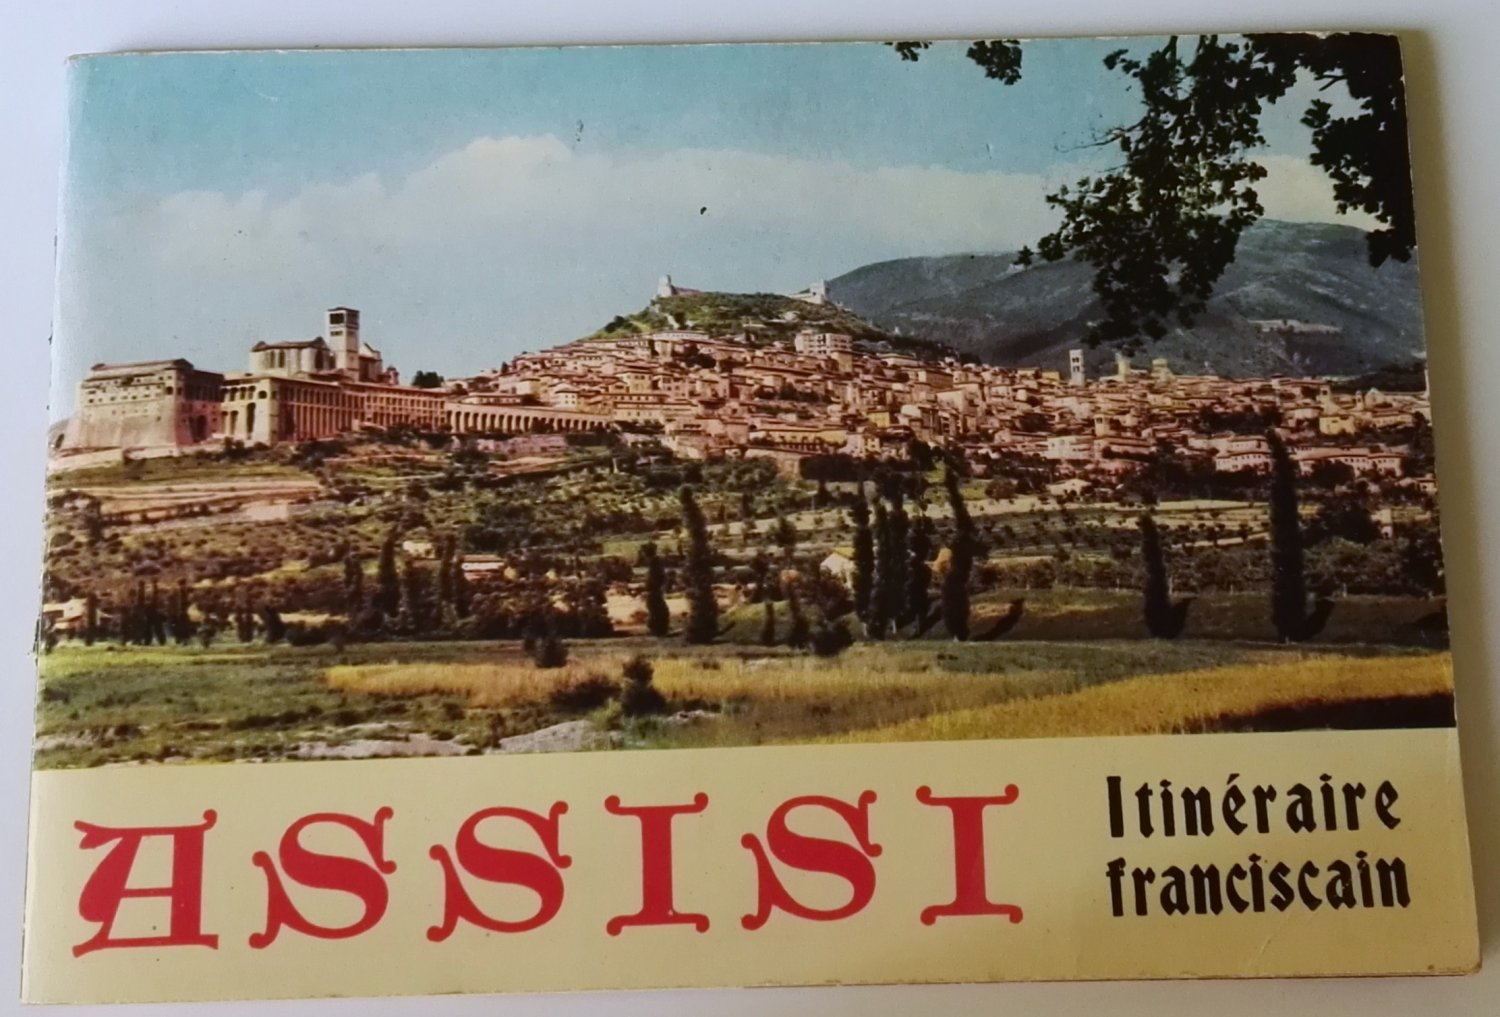 Book / Assisi Itinéraire franciscain by Stanislao Majarelli - Illustrated 1964